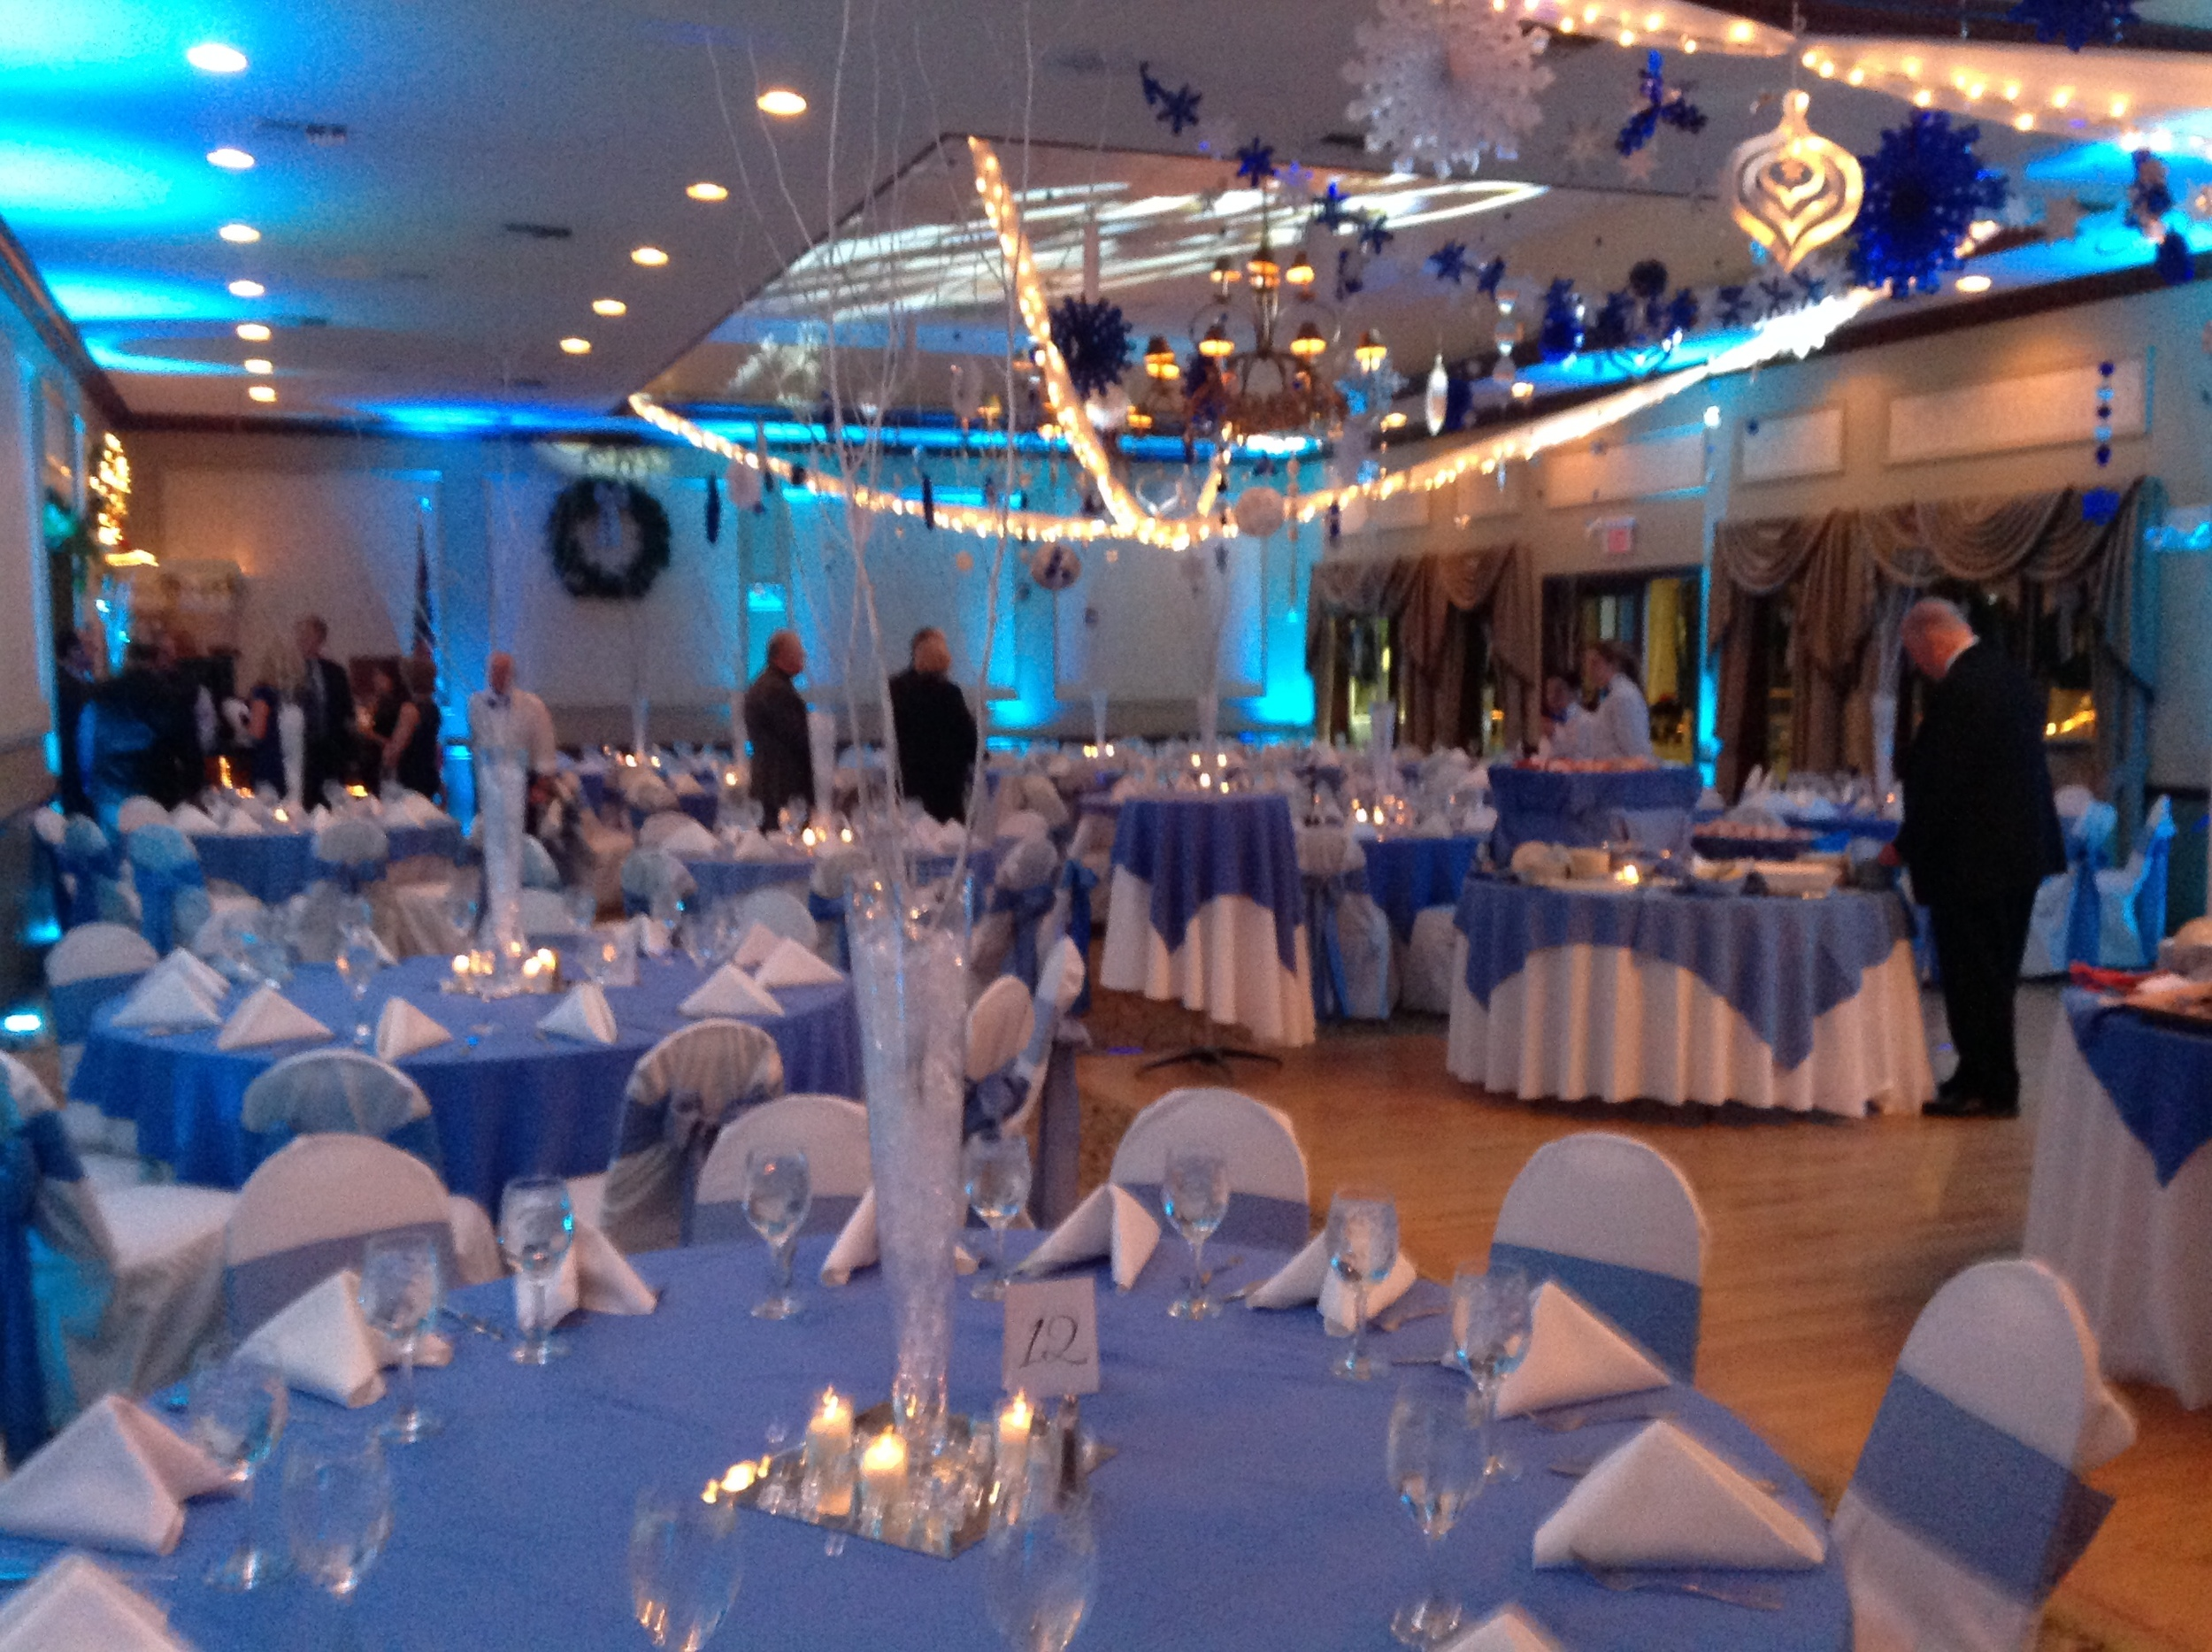 VENUE STANTON RIDGE HOLIDAY THEME4.JPG